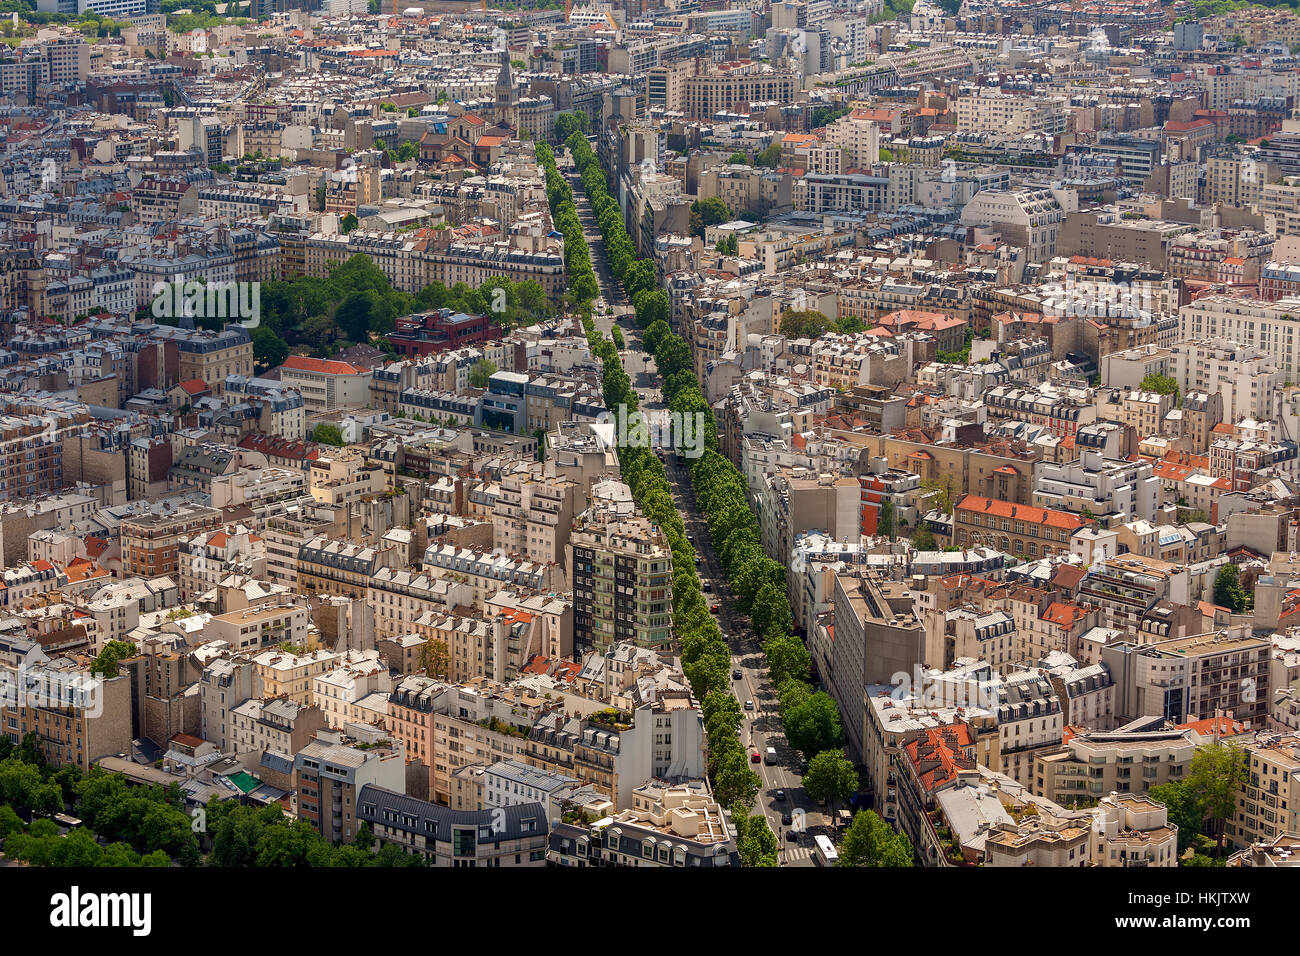 Buildings, streets and boulevards as seen from above in Paris, France. - Stock Image